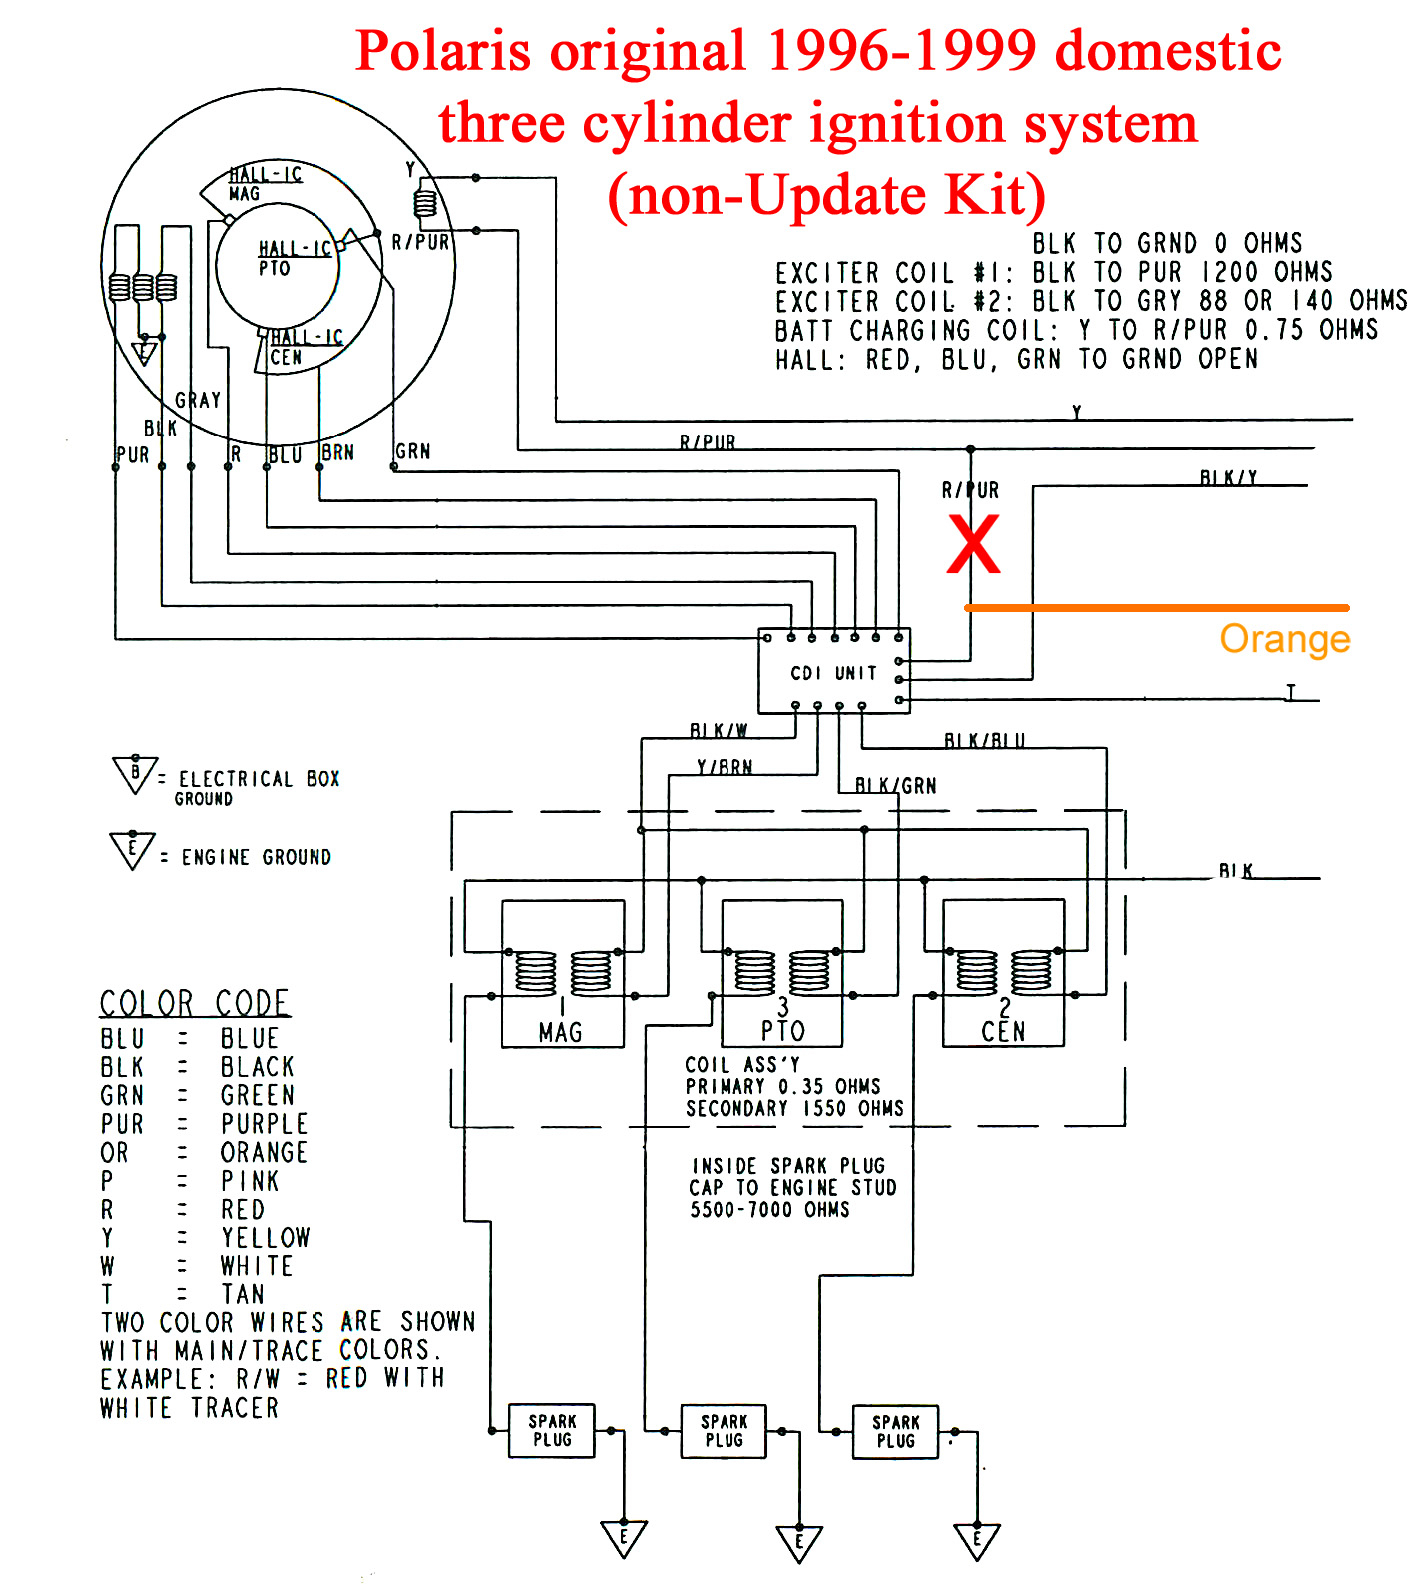 ignition interlock wiring diagram Download-Ignition Interlock Wiring Diagram Luxury Ignition Switch Wiring Diagram Chevy New Universal Autoctono 4-o